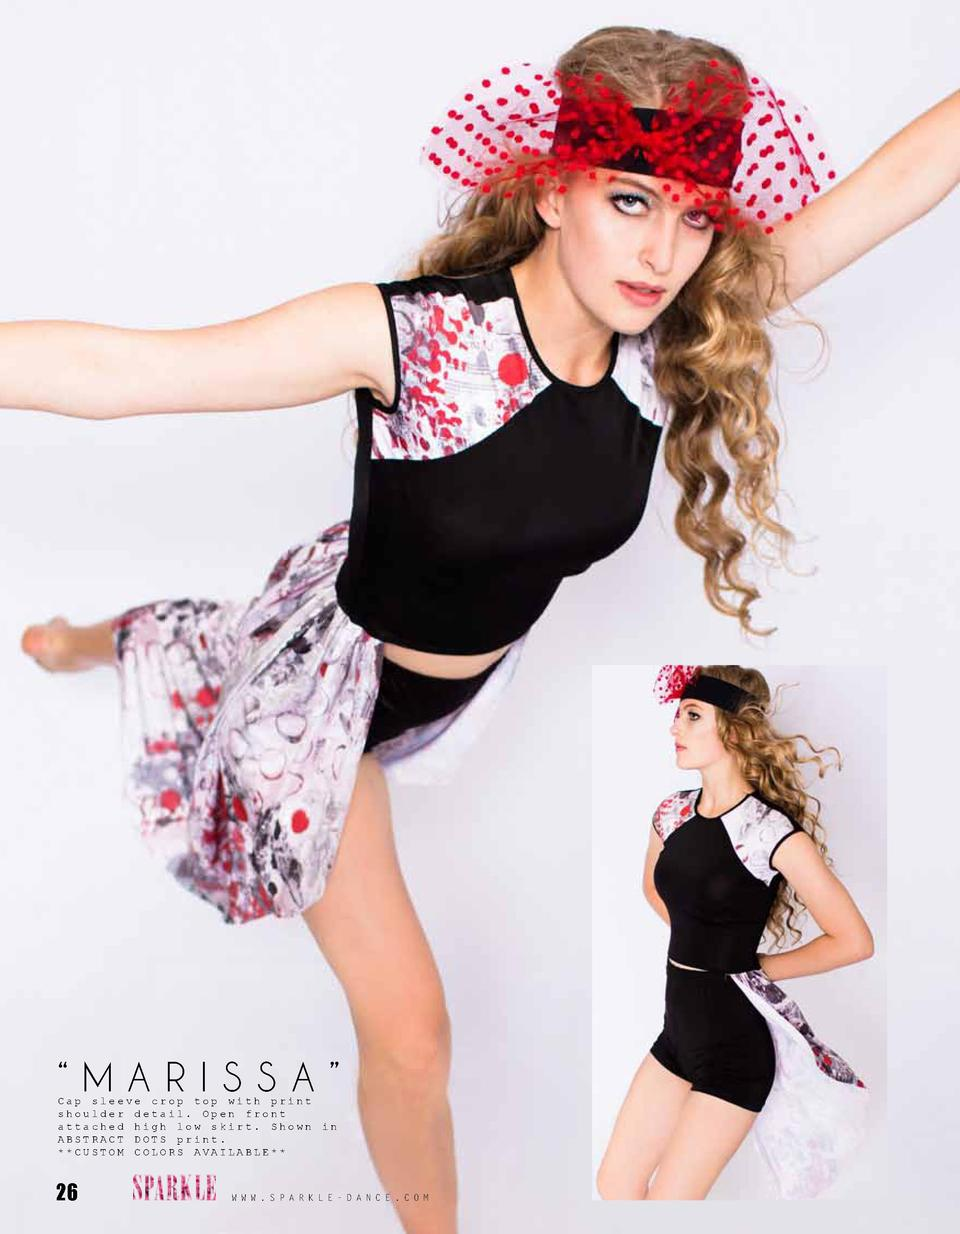 MARISSA    Cap sleeve crop top with print shoulder detail. Open front attached high low skirt. Shown ABSTRACT DOTS prin...